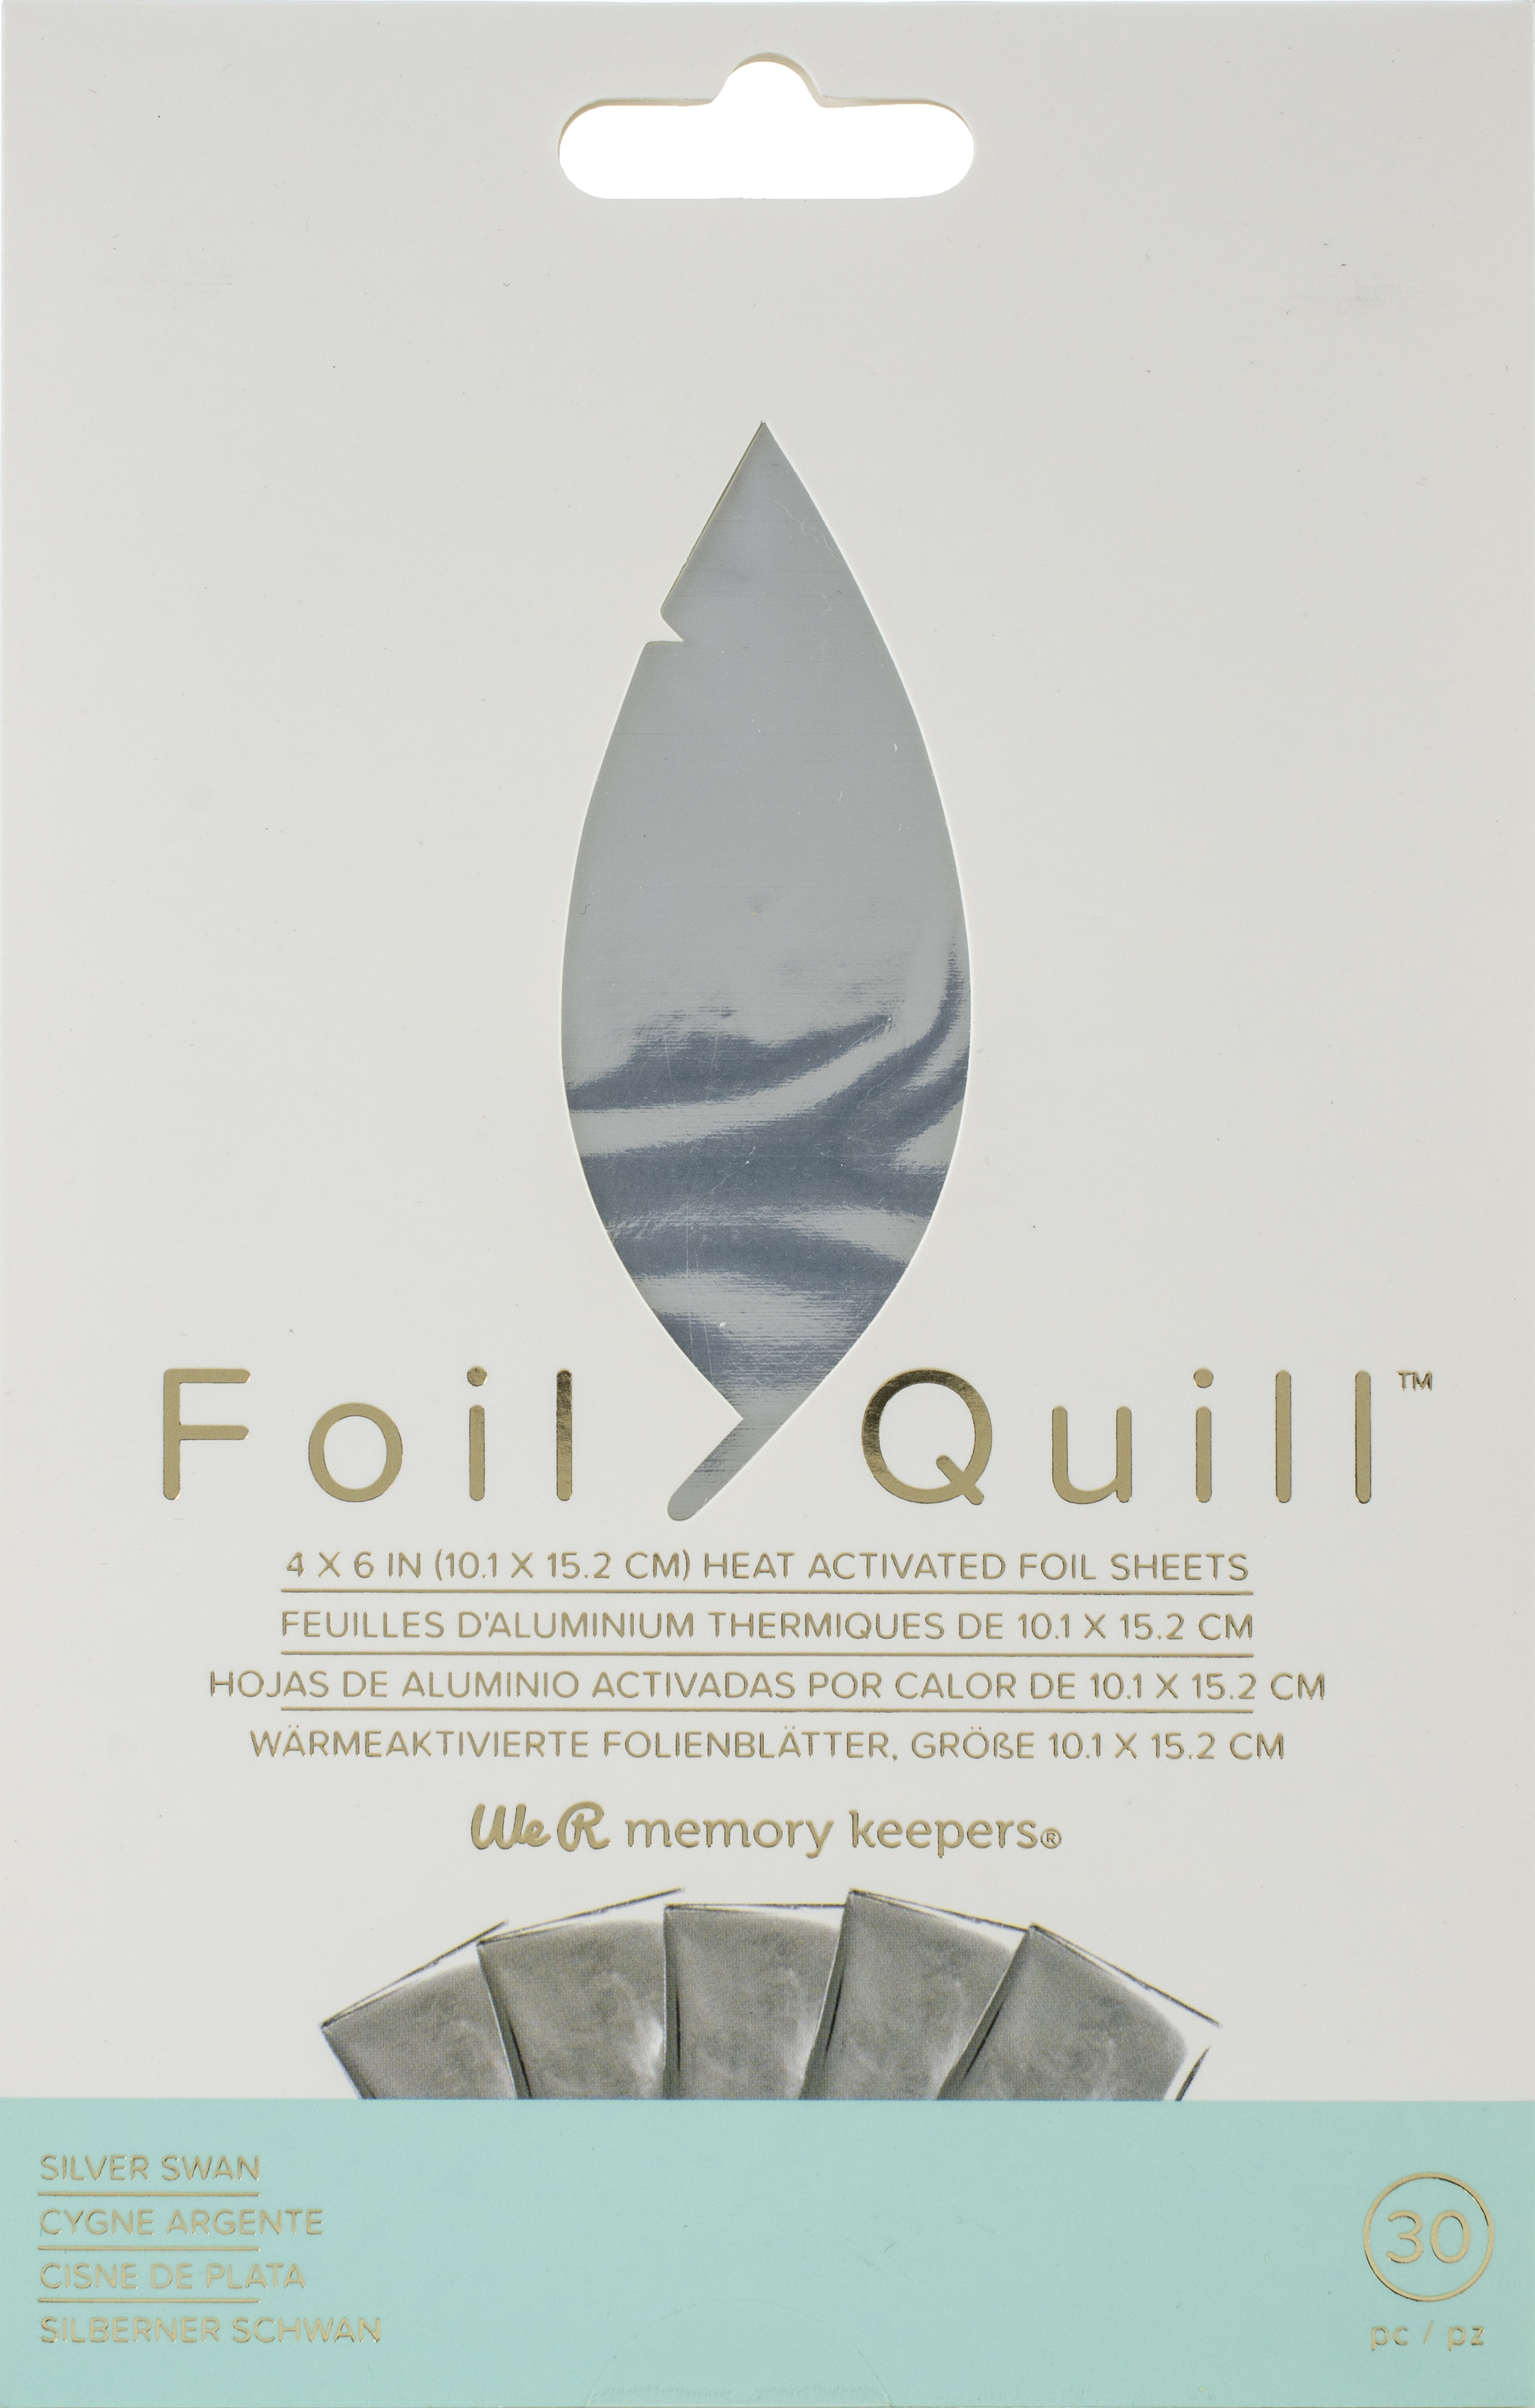 We R Memory Keepers Foil Quill Foil Sheets 4X6 30/Pkg-Silver Swan